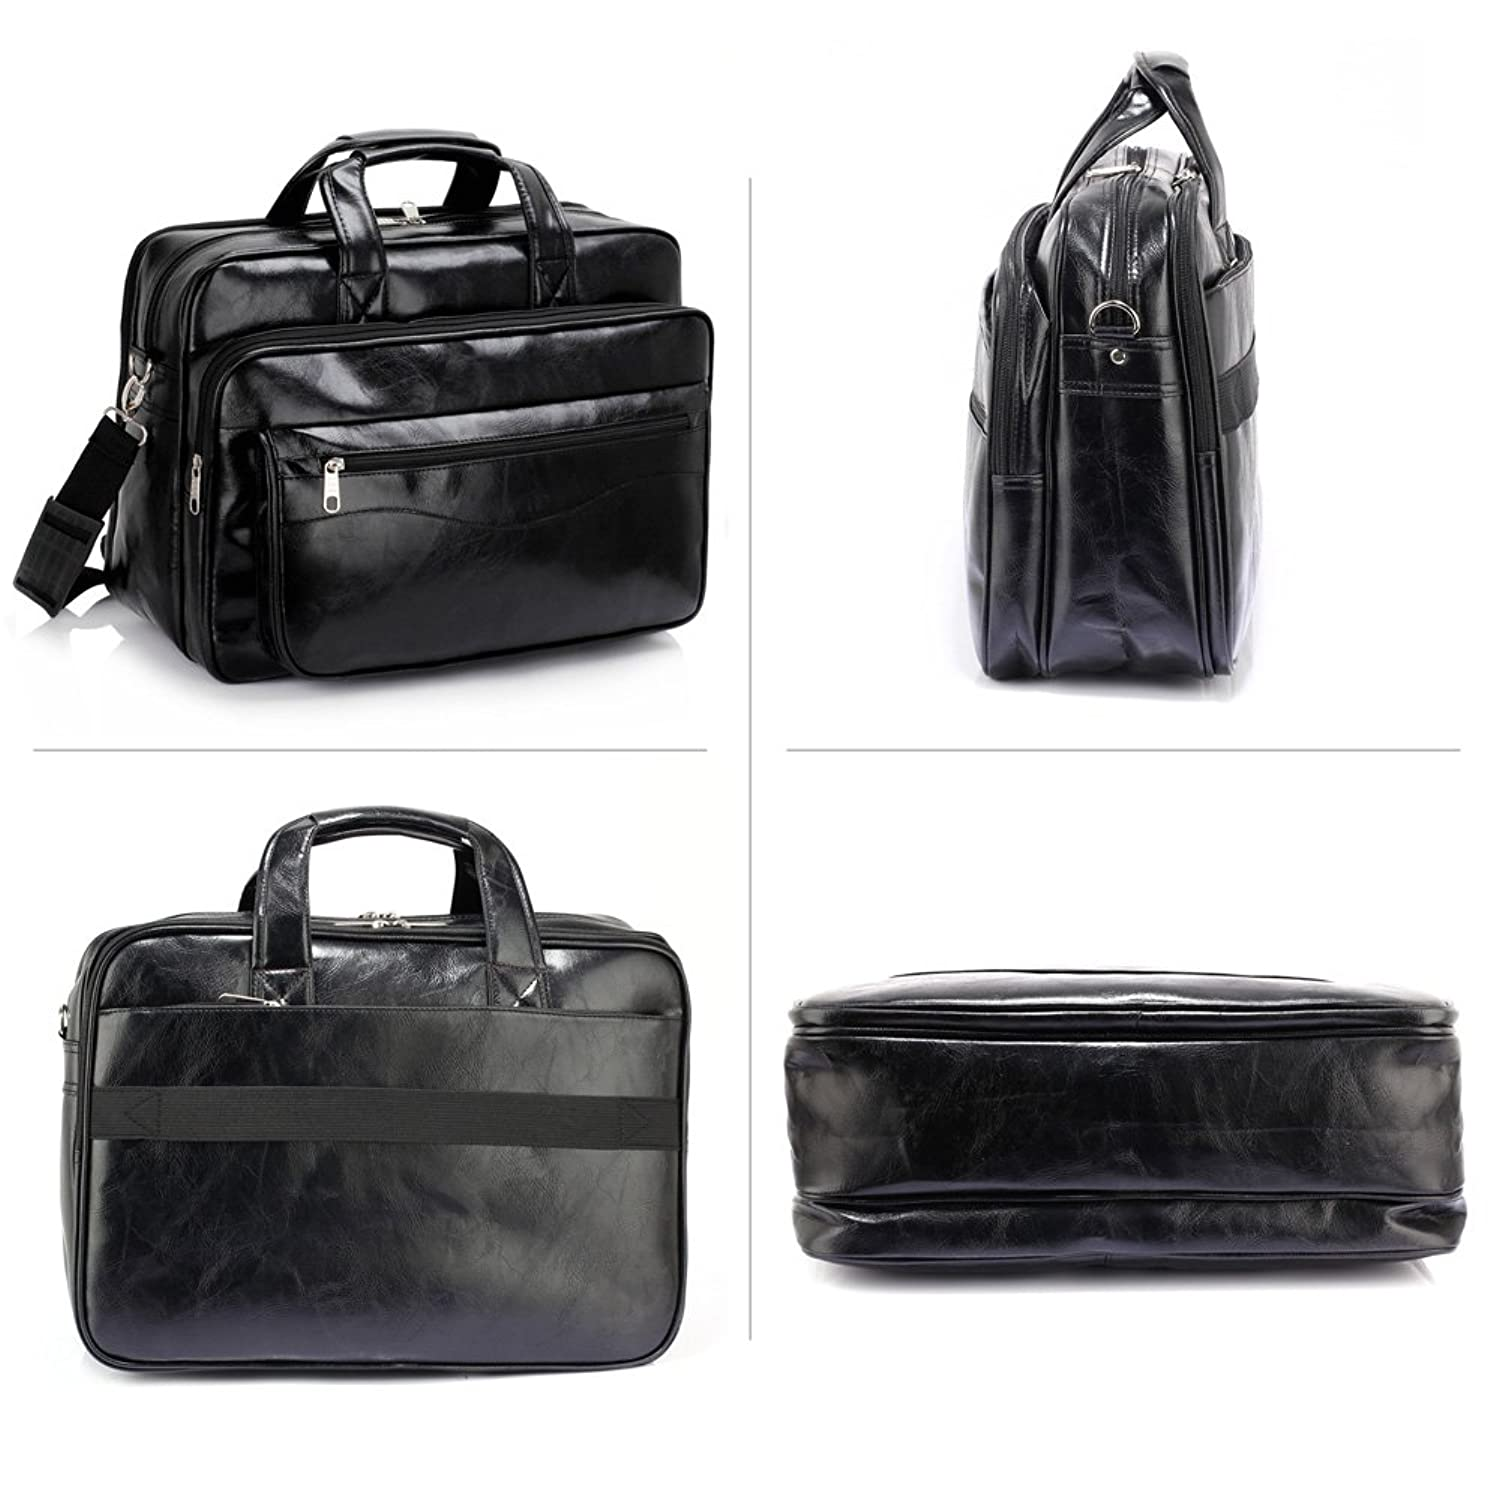 Mens And Womens Designer Handbags Shoulder Tote Bags For Office Use, Black:  Amazon.co.uk: Shoes & Bags